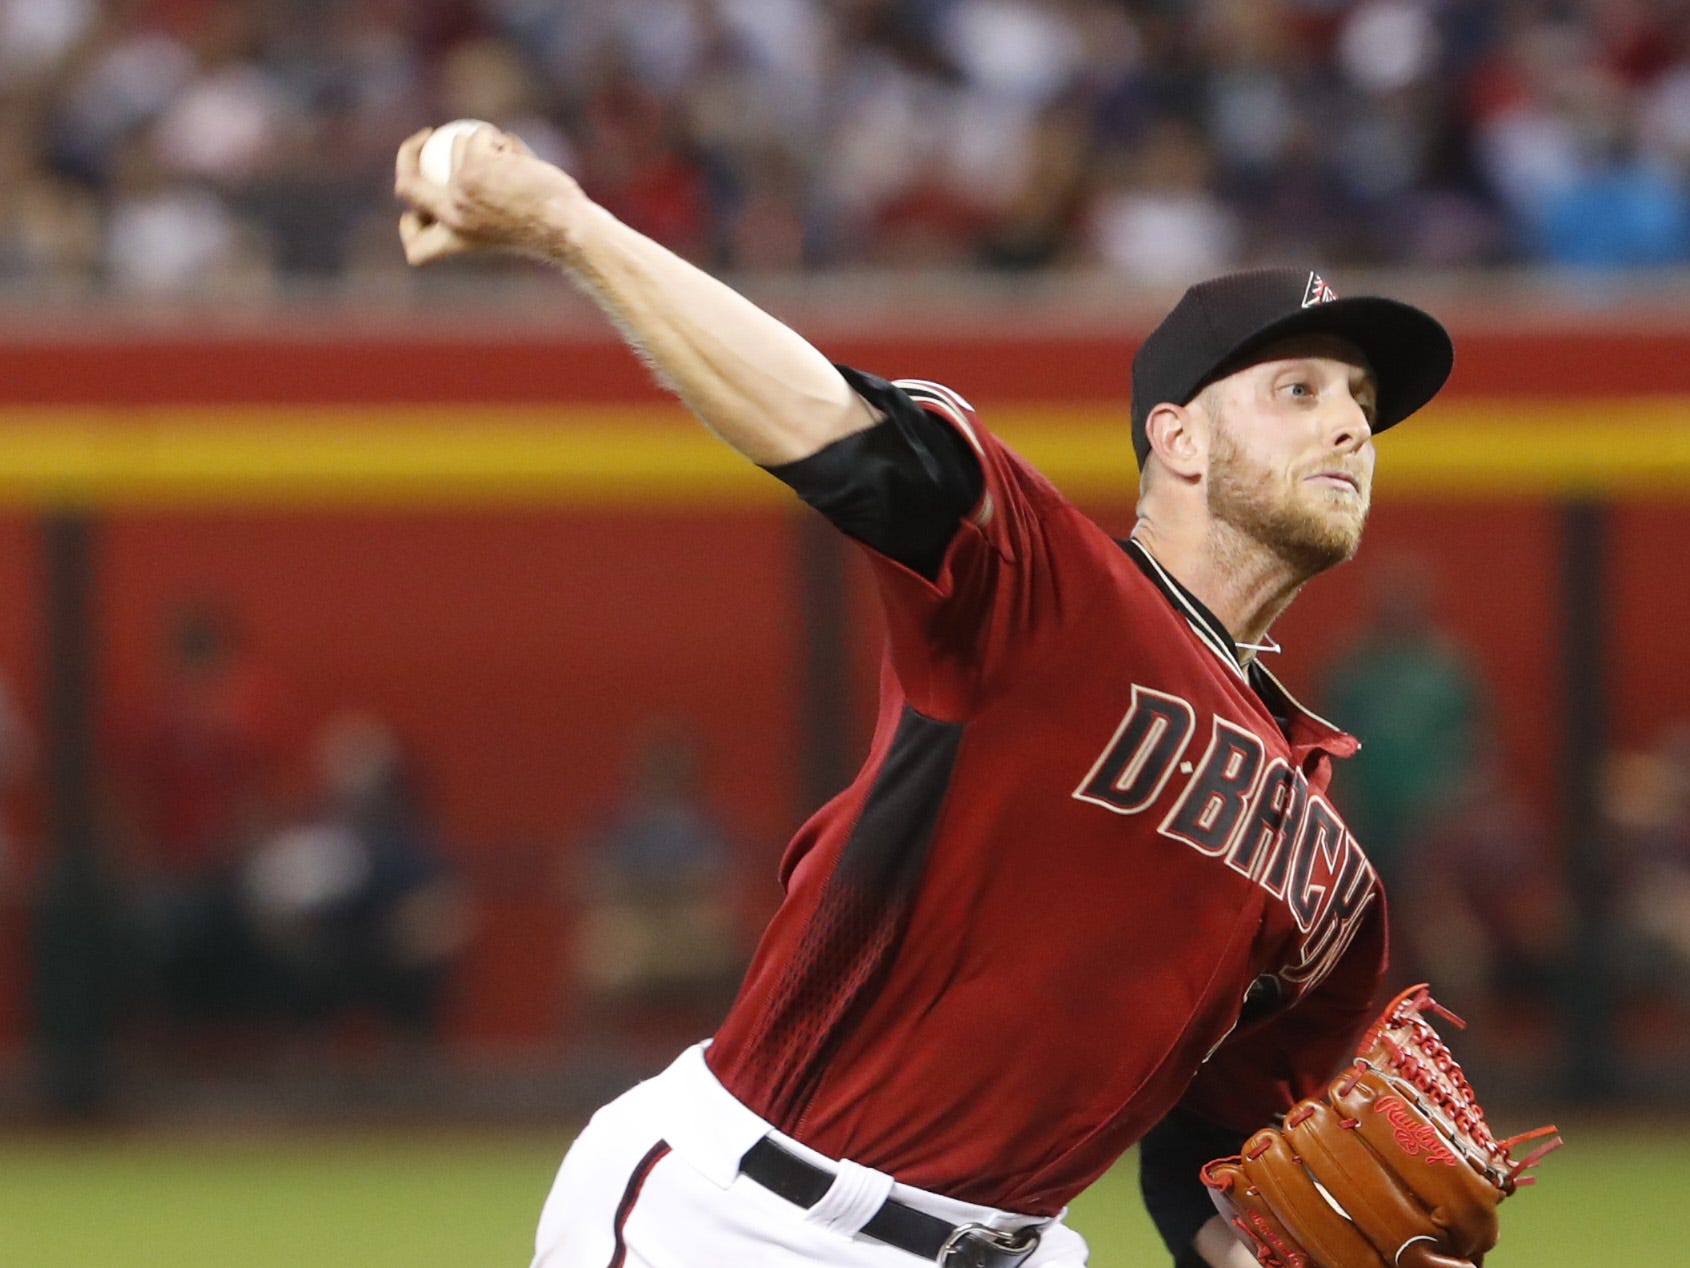 Diamondbacks' Merrill Kelly (29) pitches against the Red Sox during the seventh inning at Chase Field in Phoenix, Ariz. on April 7, 2019.